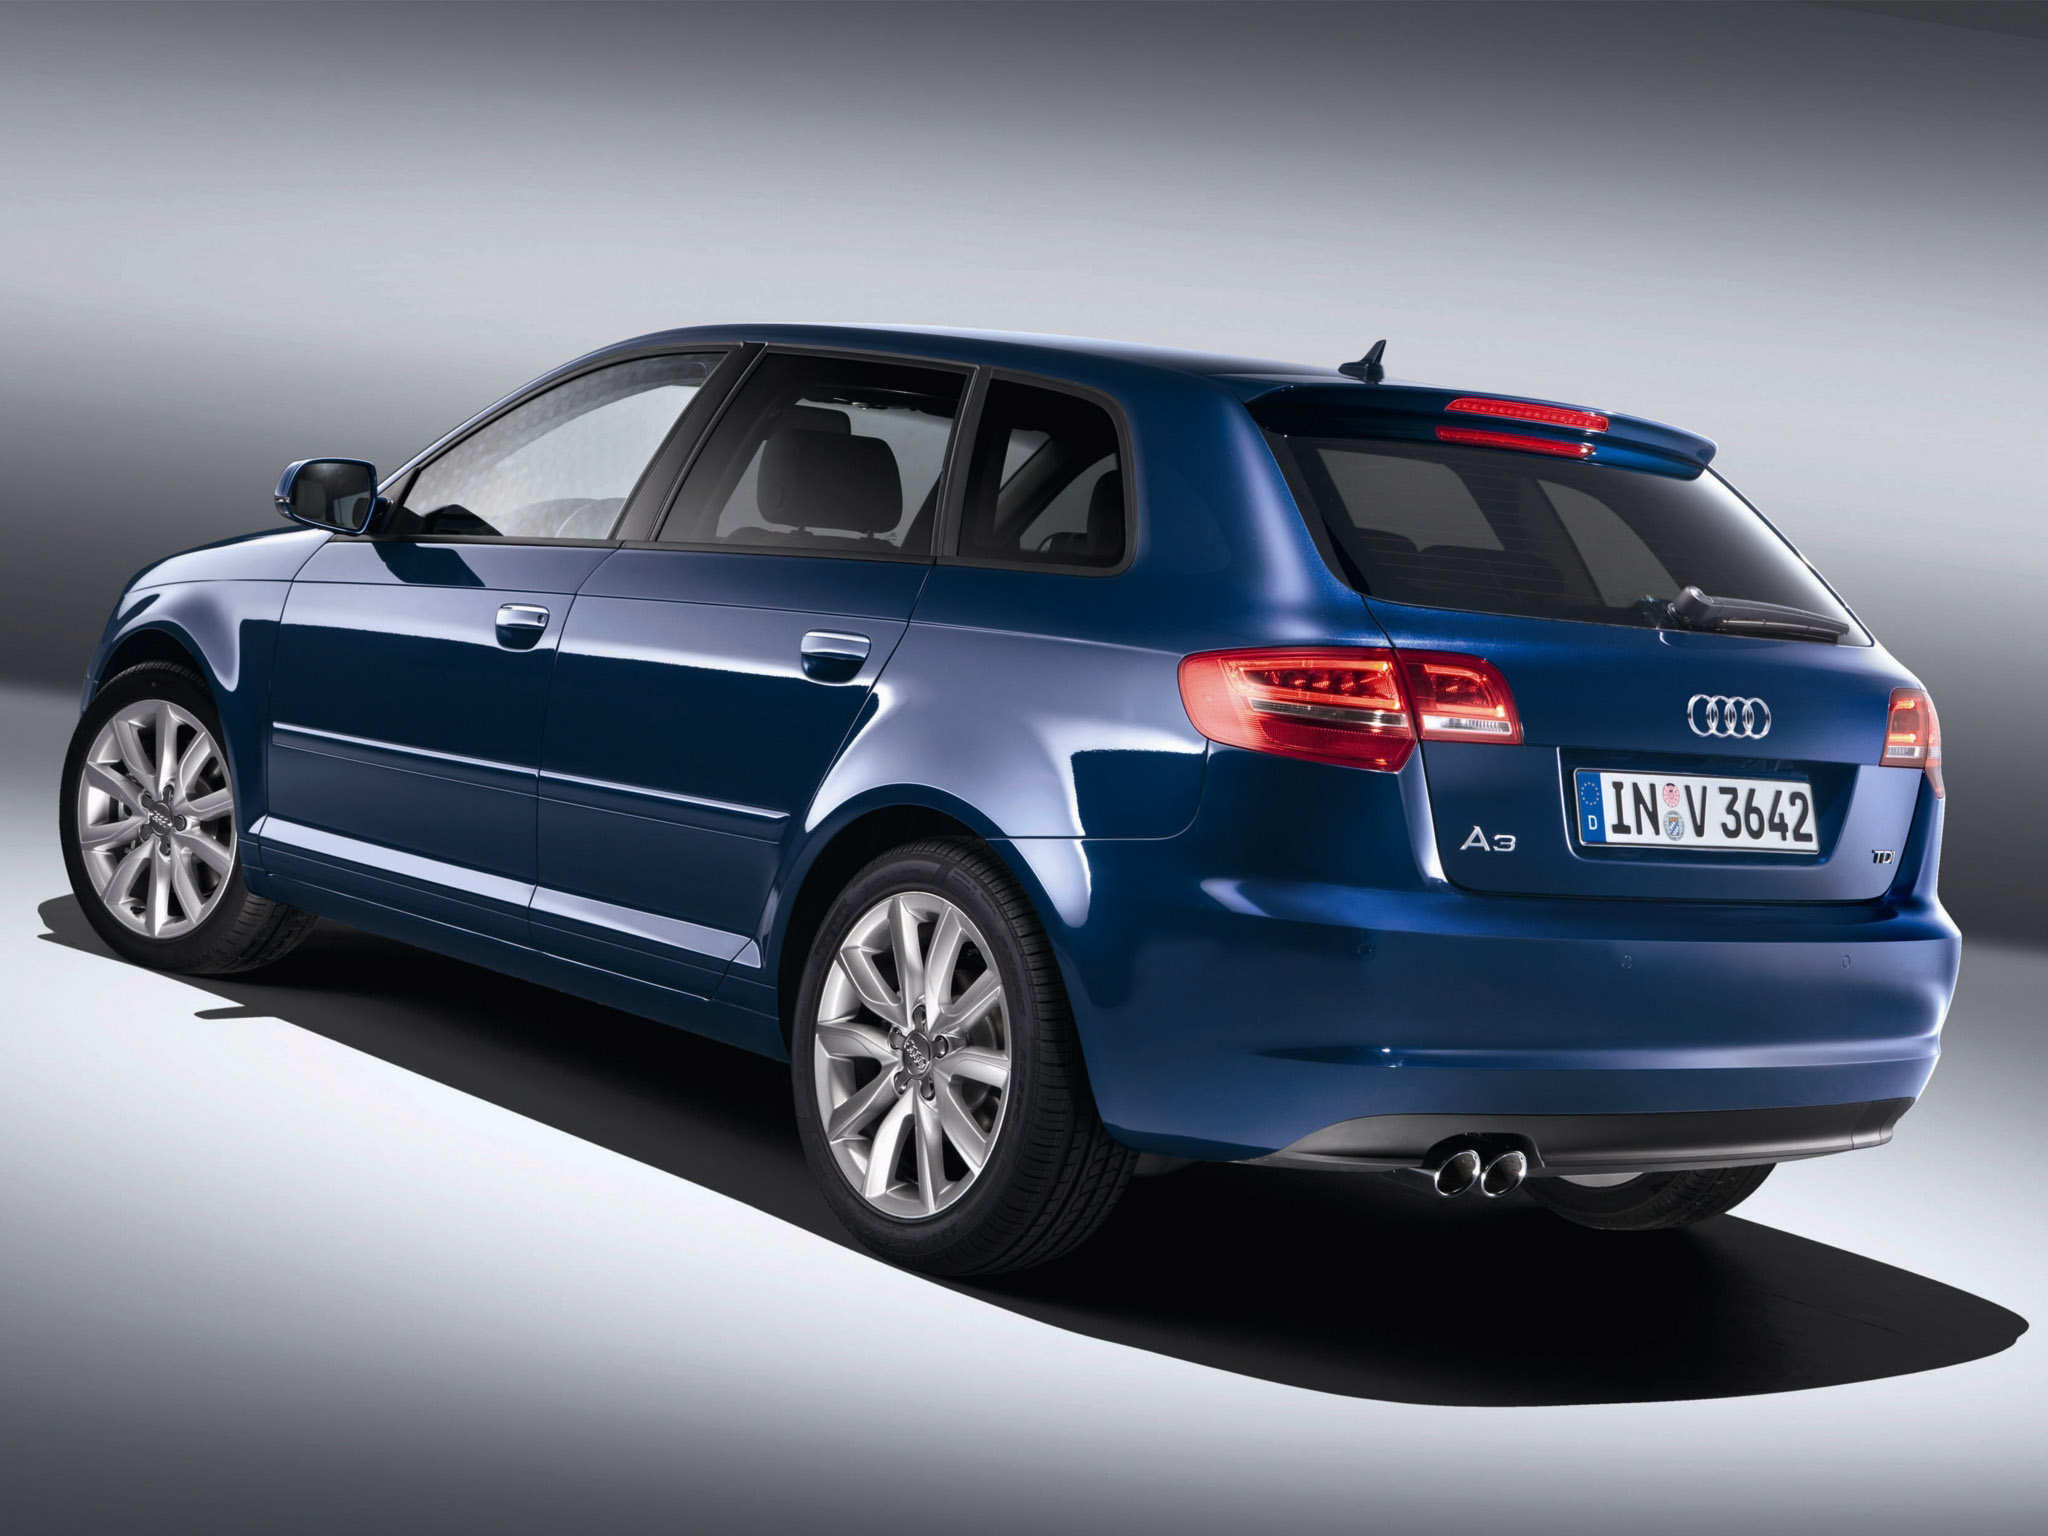 audi a3 sportback 8pa 2010 audi a3 sportback 8pa 2010 photo 15 car in pictures car photo gallery. Black Bedroom Furniture Sets. Home Design Ideas